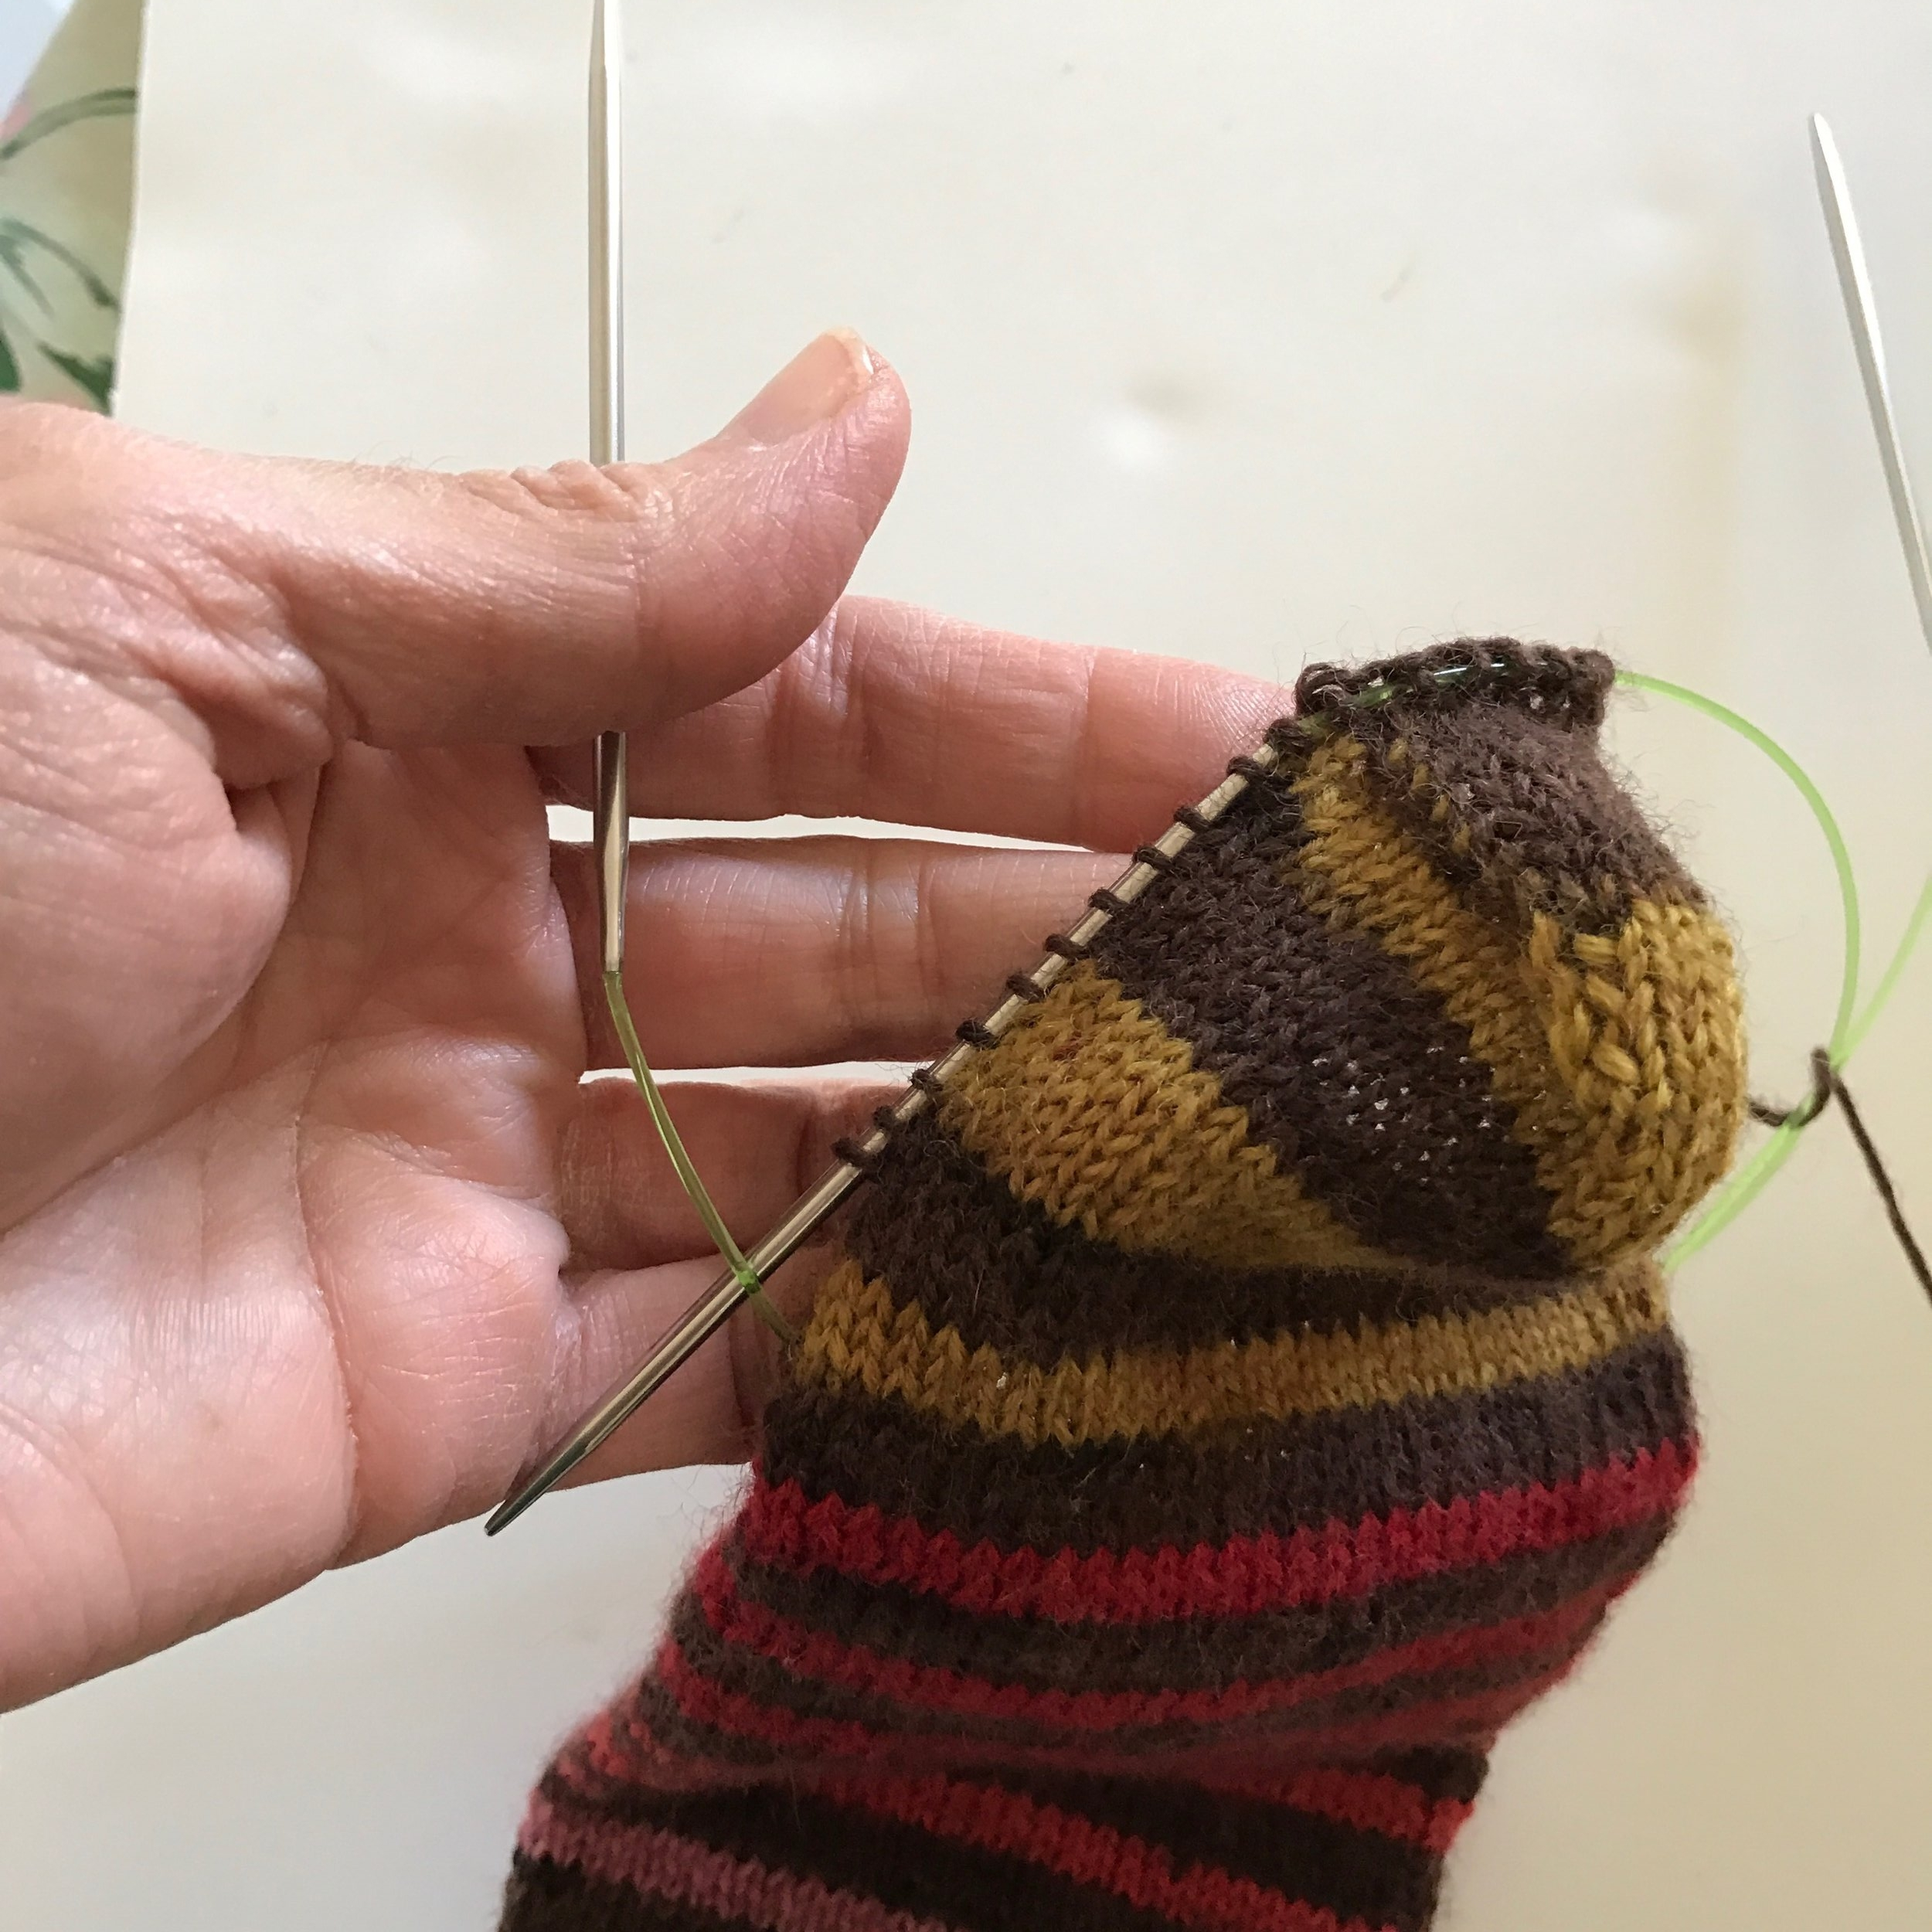 Stitches picked up and ready for next needle